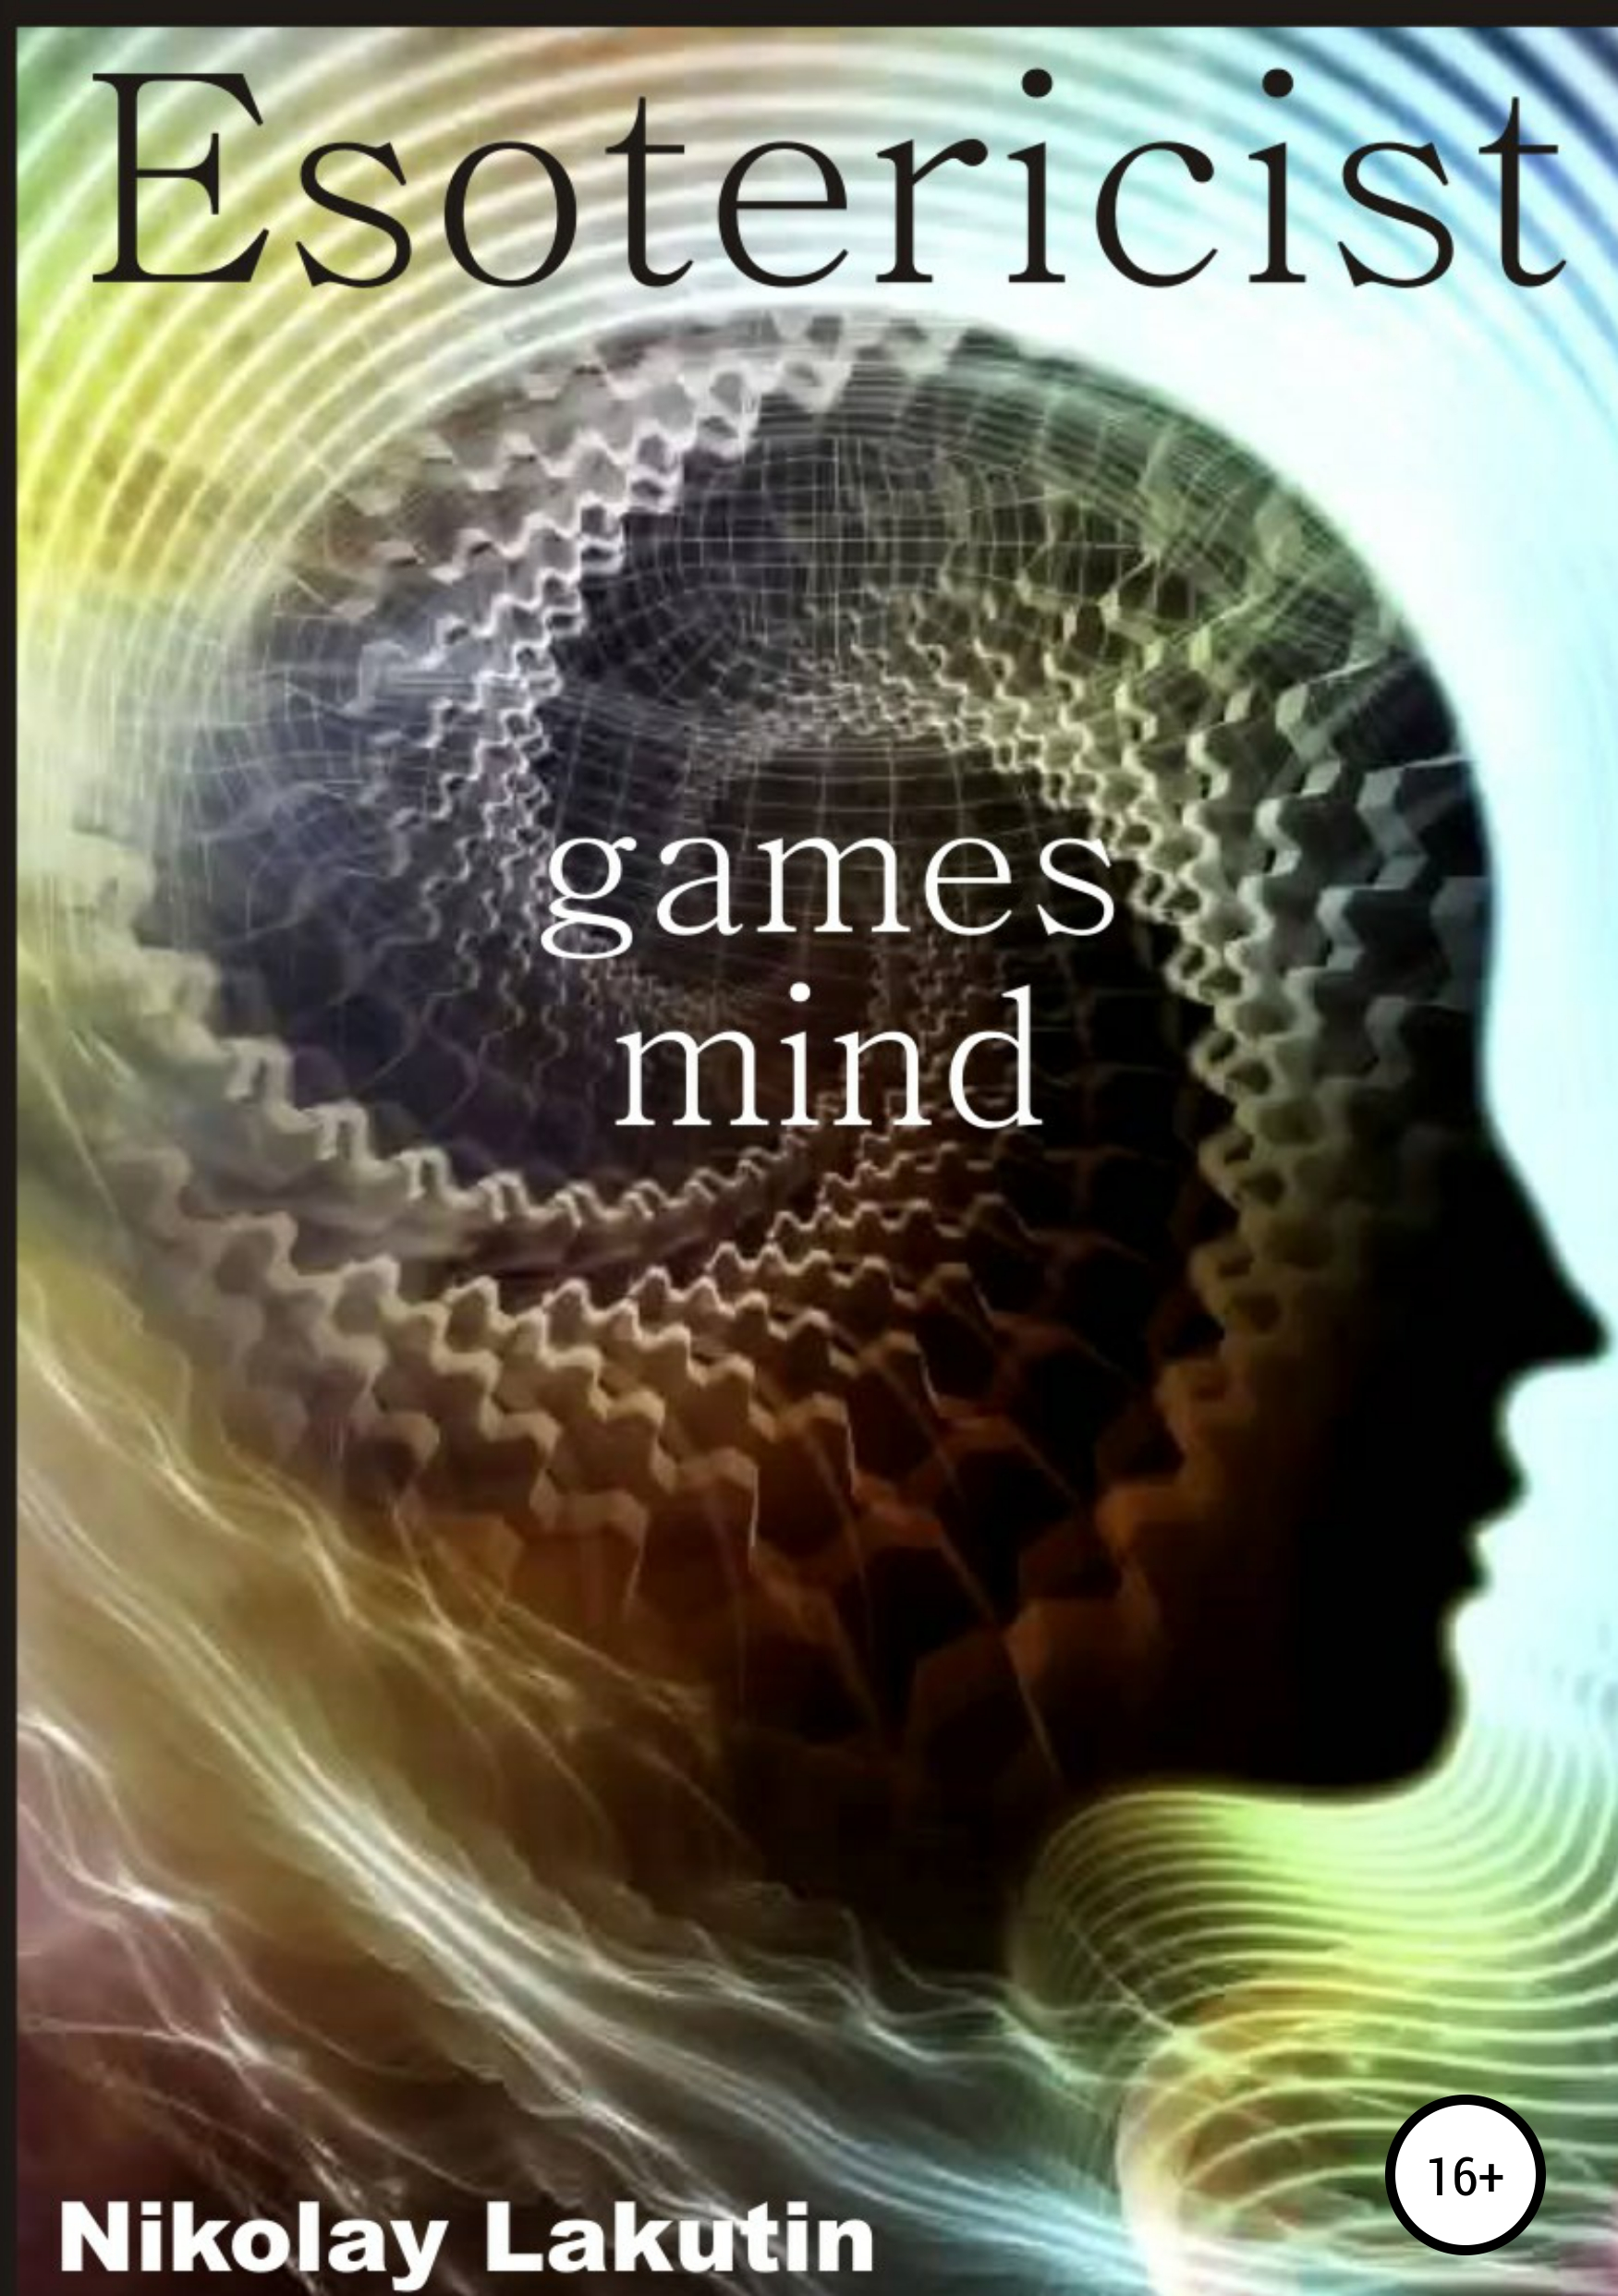 Nikolay Lakutin Esotericist. Mind games all we know